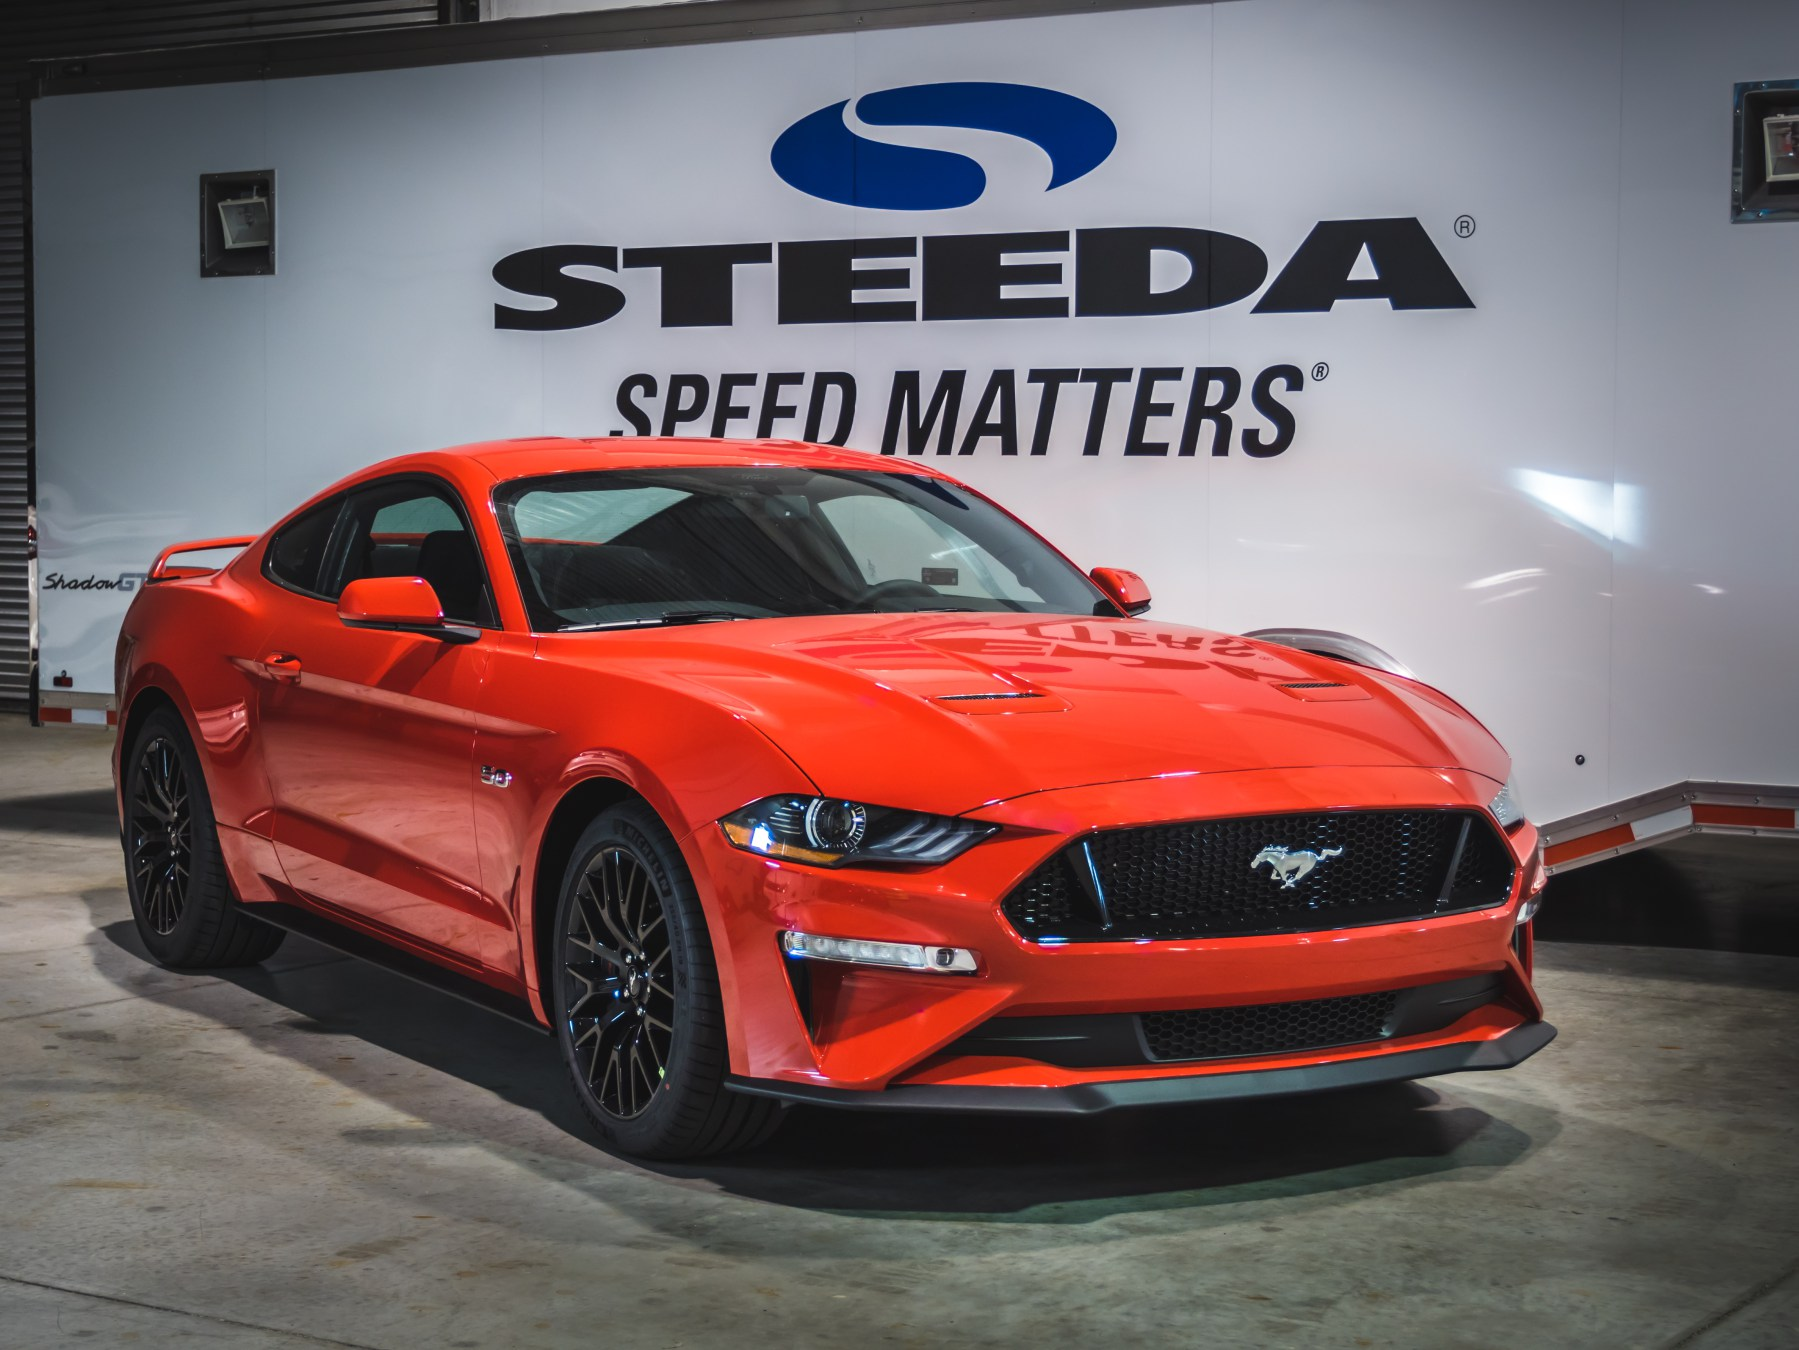 Steeda offers a wide range of Performance Vehicles ... please contact us for a quote or to receive more information. -